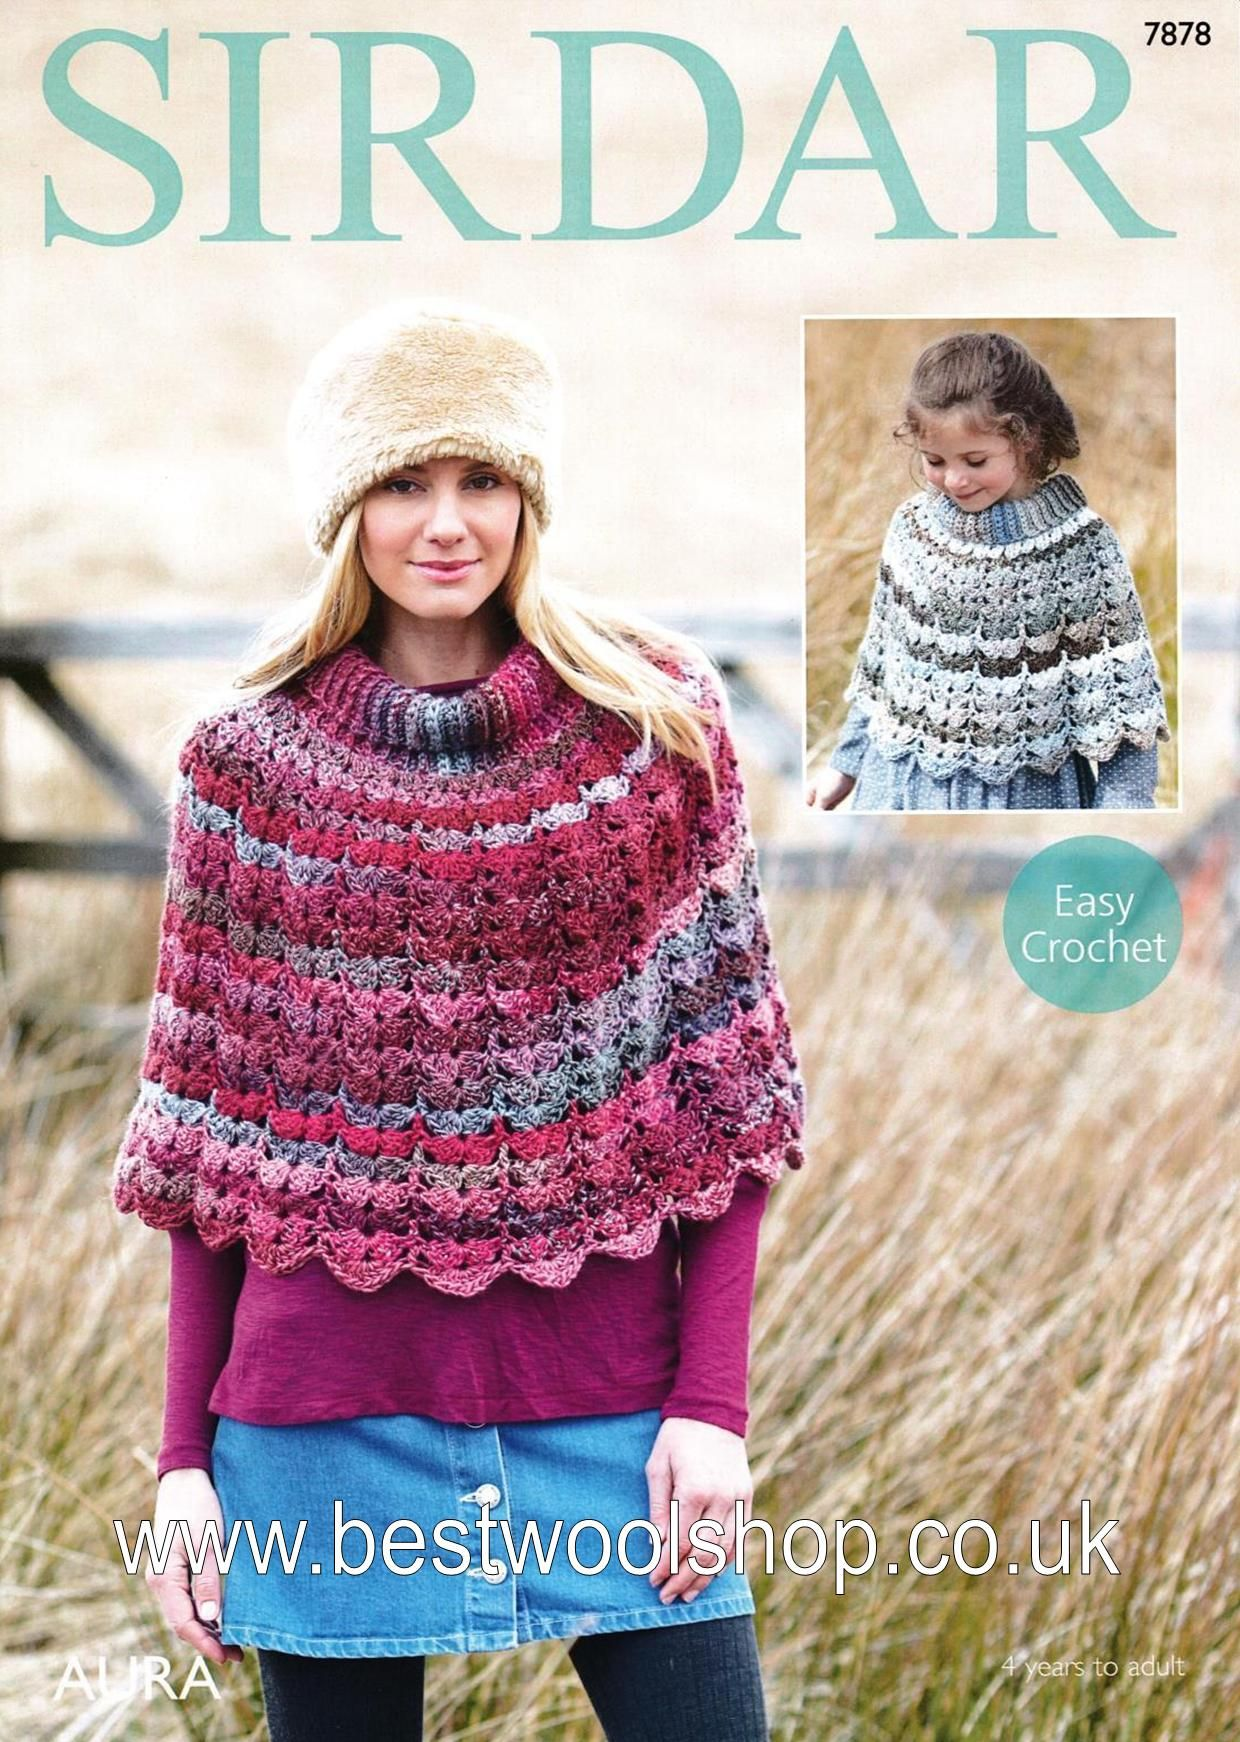 7878 - SIRDAR AURA CHUNKY LADIES & GIRLS' PONCHO CROCHET PATTERN - TO FIT 4  YEARS TO ADULT